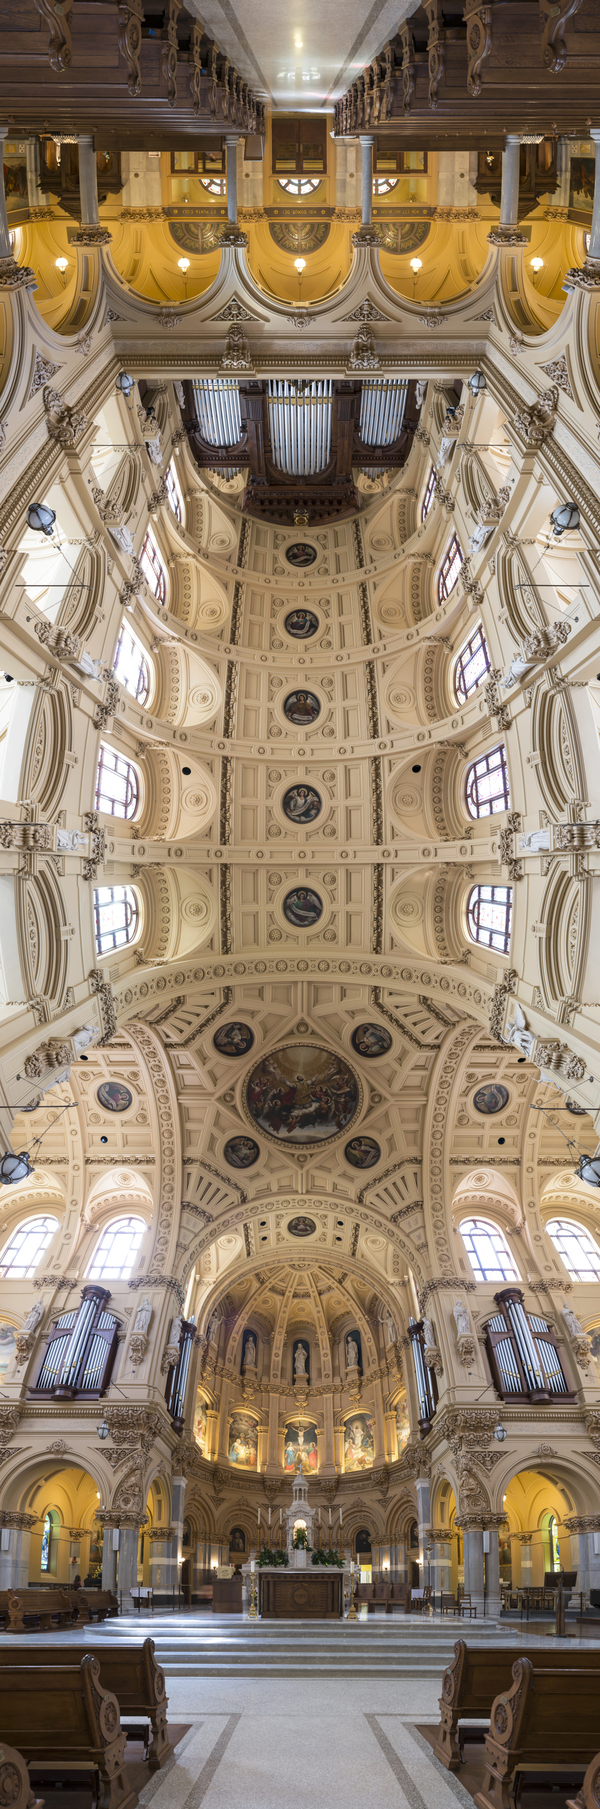 Vertical Panorama by Richard Silver